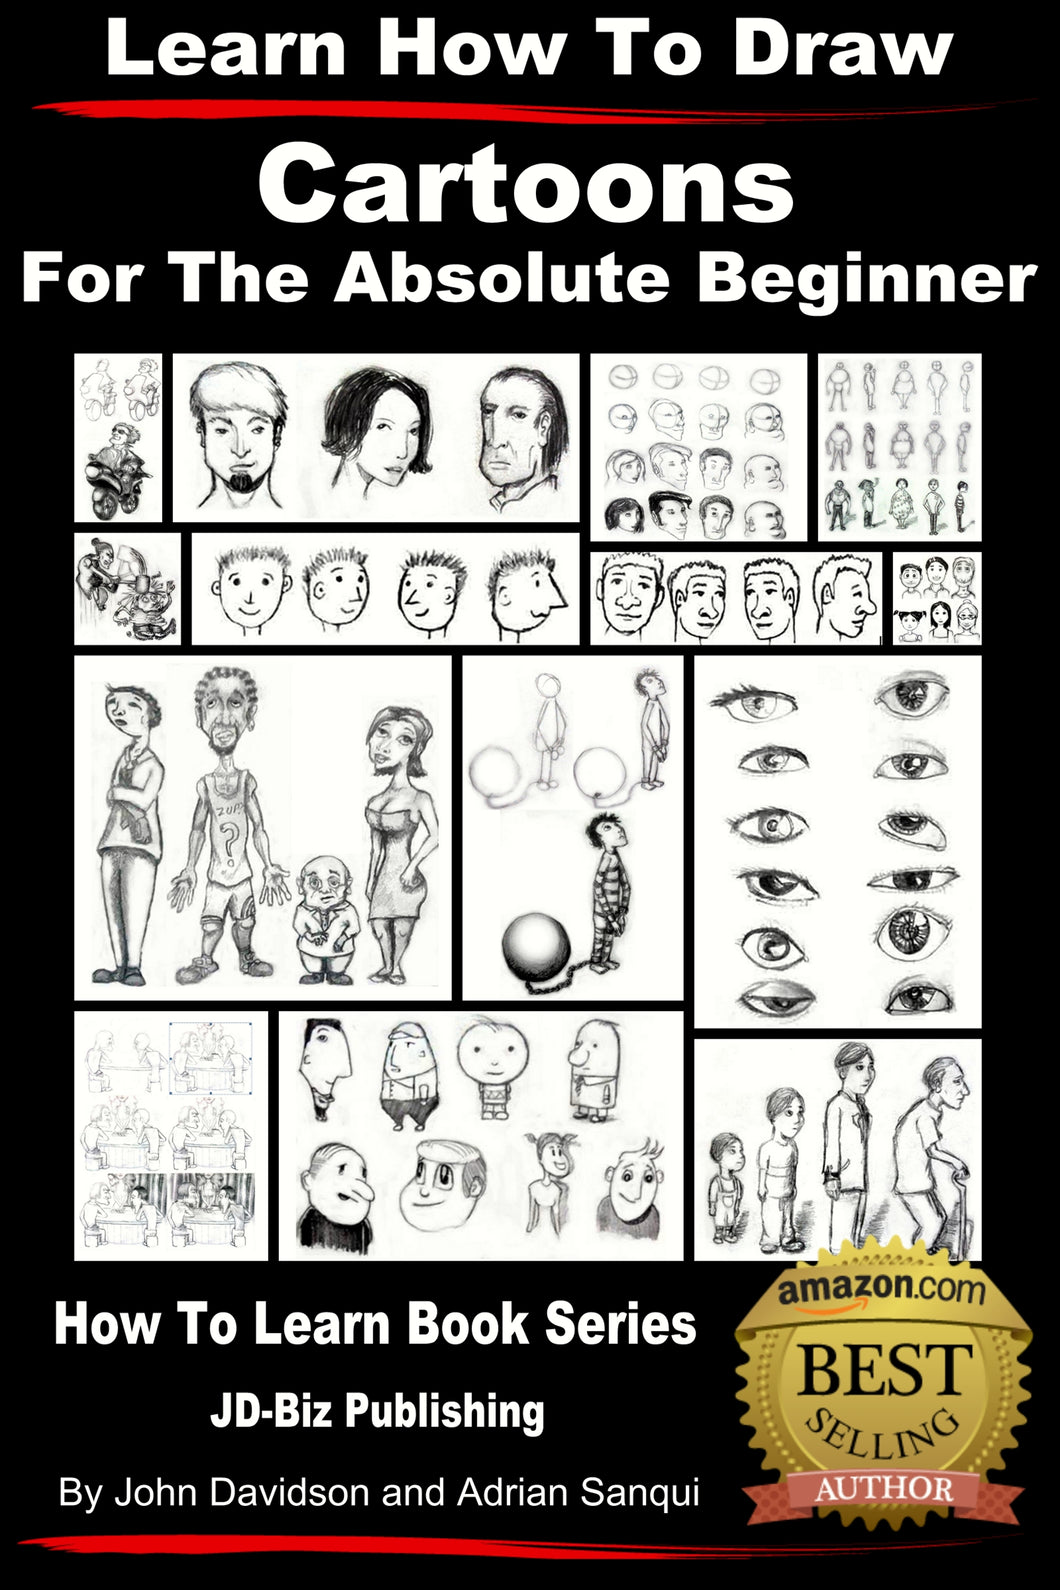 Learn How to Draw Cartoons - For the Absolute Beginner